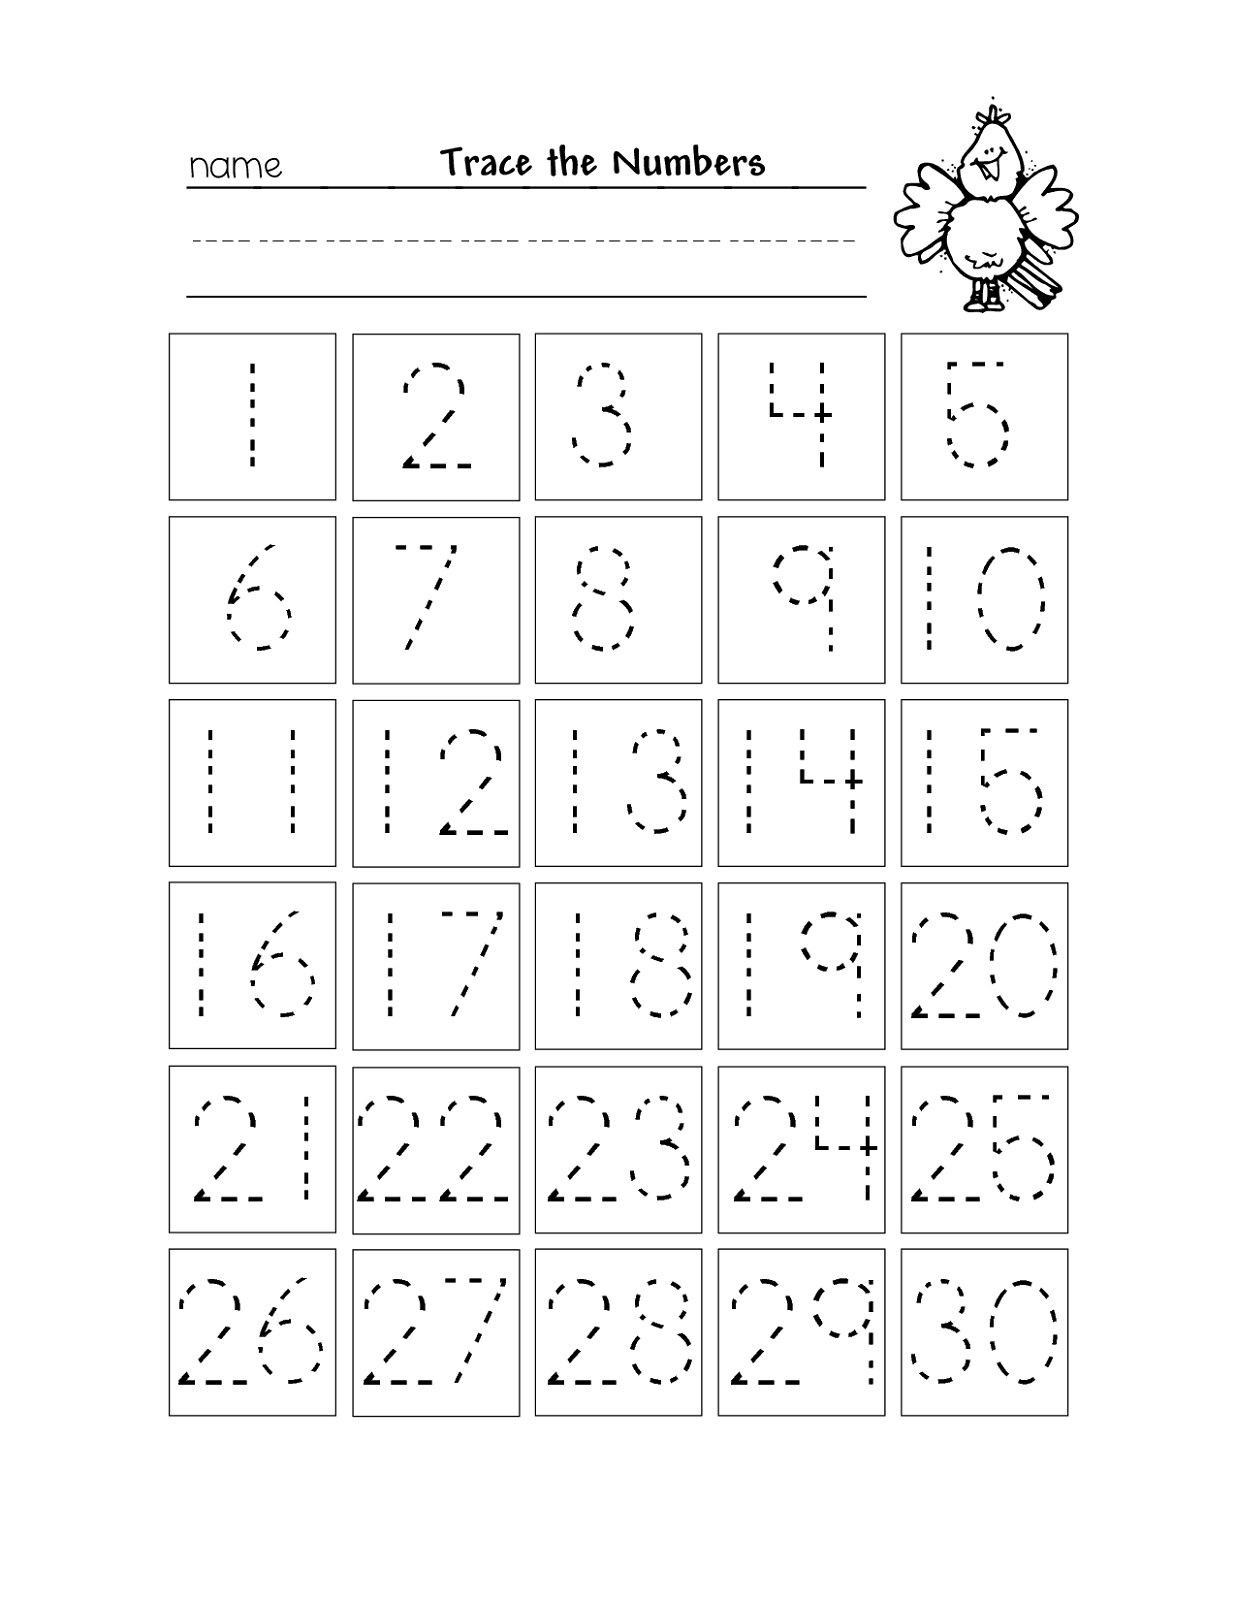 Free Printable Number Tracing Worksheets Pin On Education